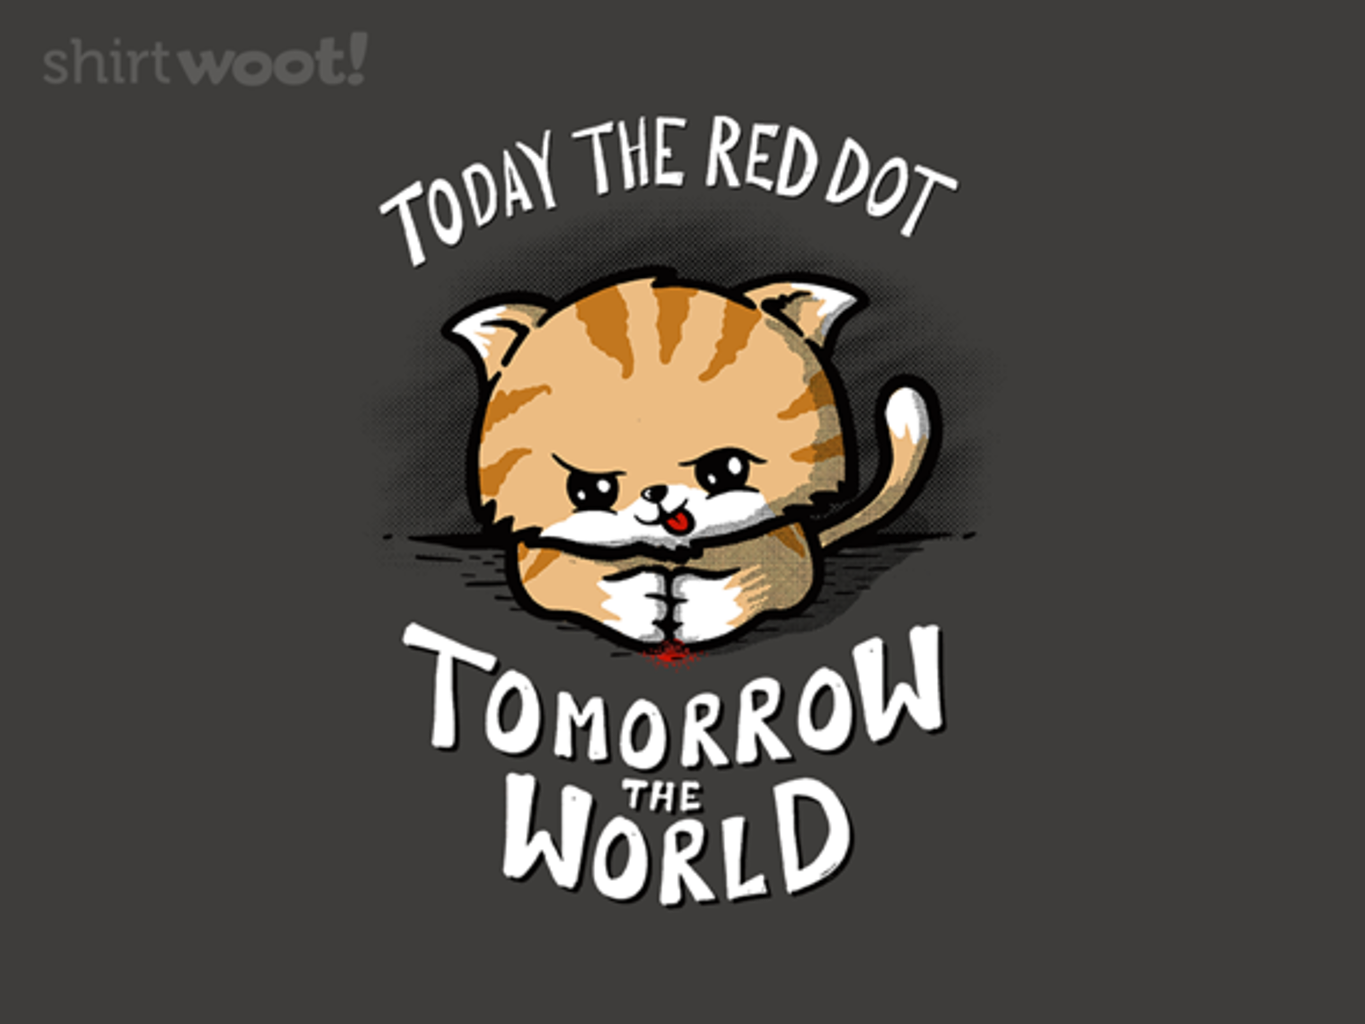 Woot!: Today, the Red Dot